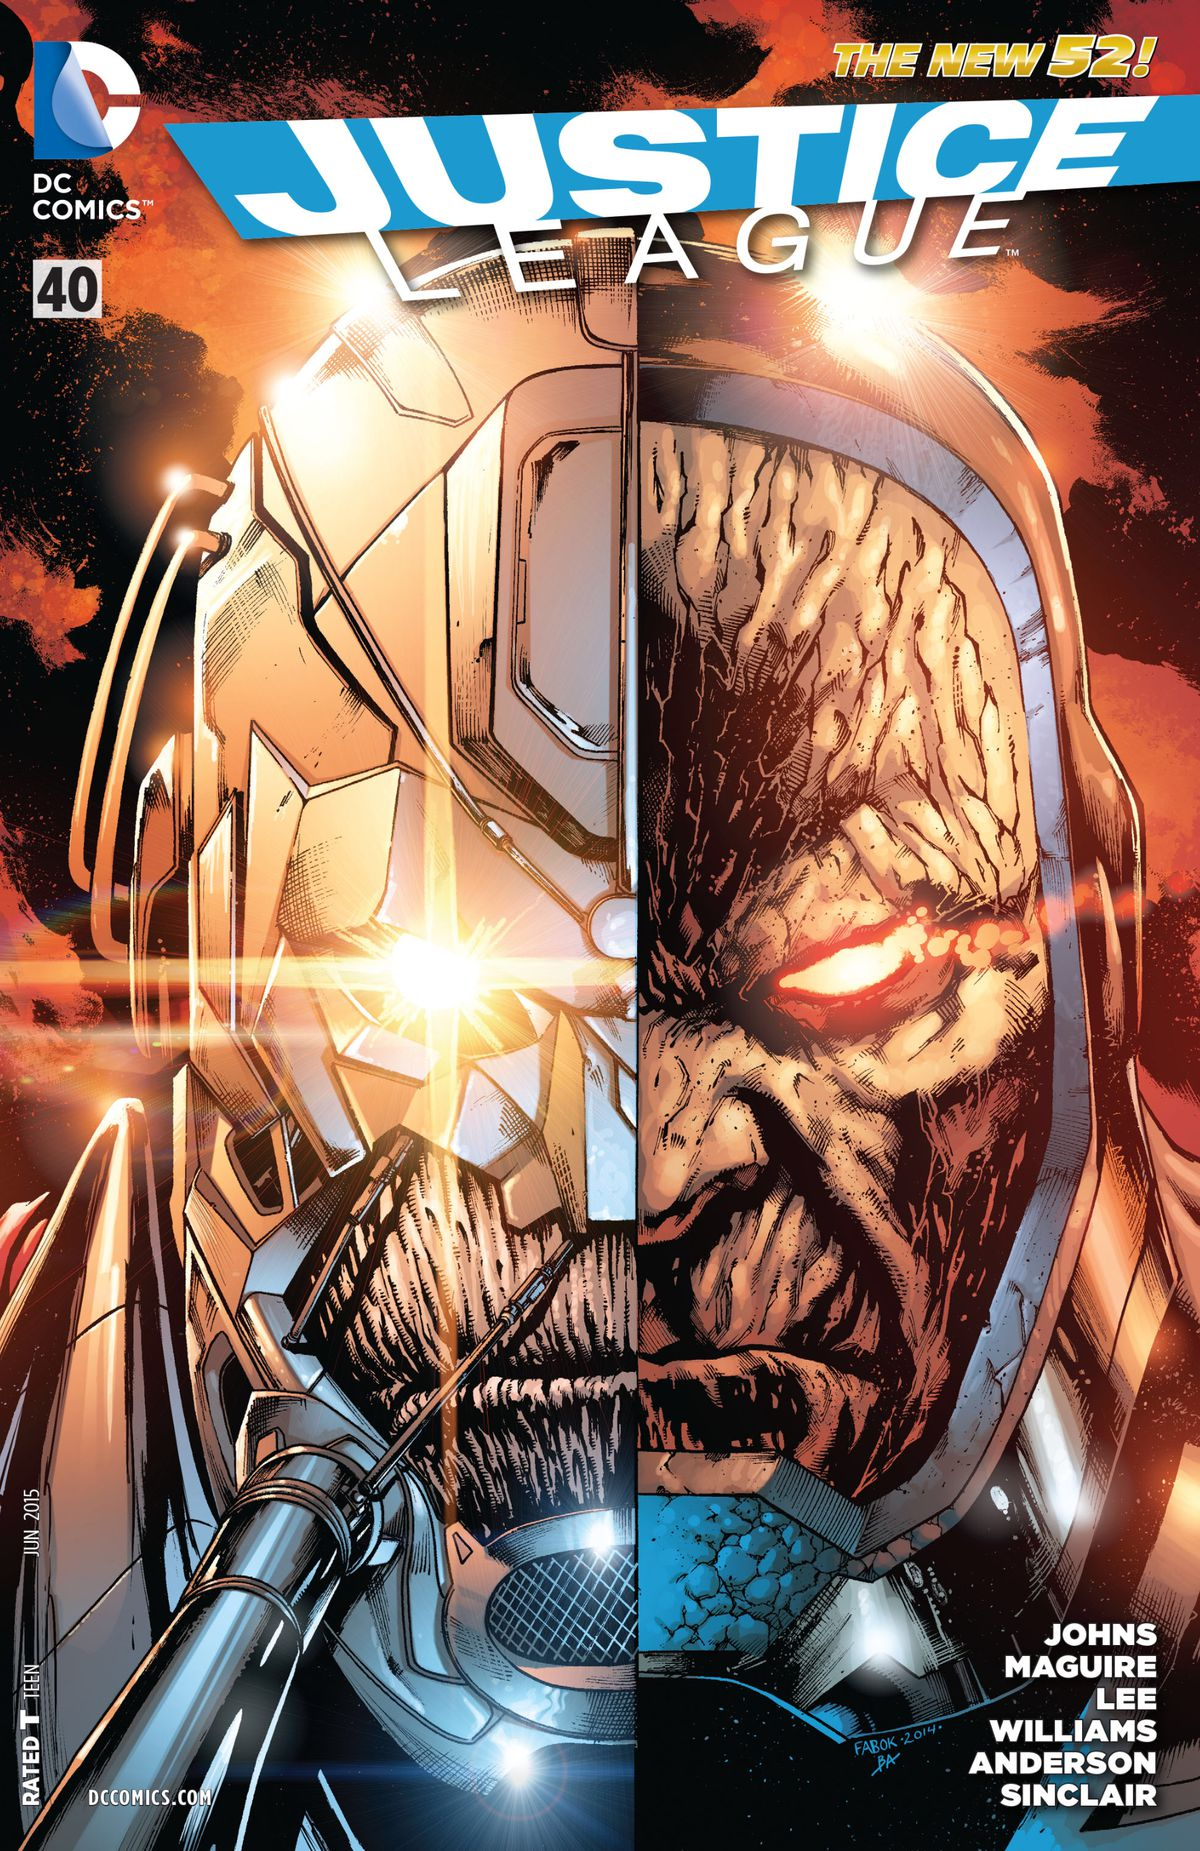 Darkseid's face placed sideby side with the Anti-Monitor's on the cover of Justice League #40, DC Comics (2015).